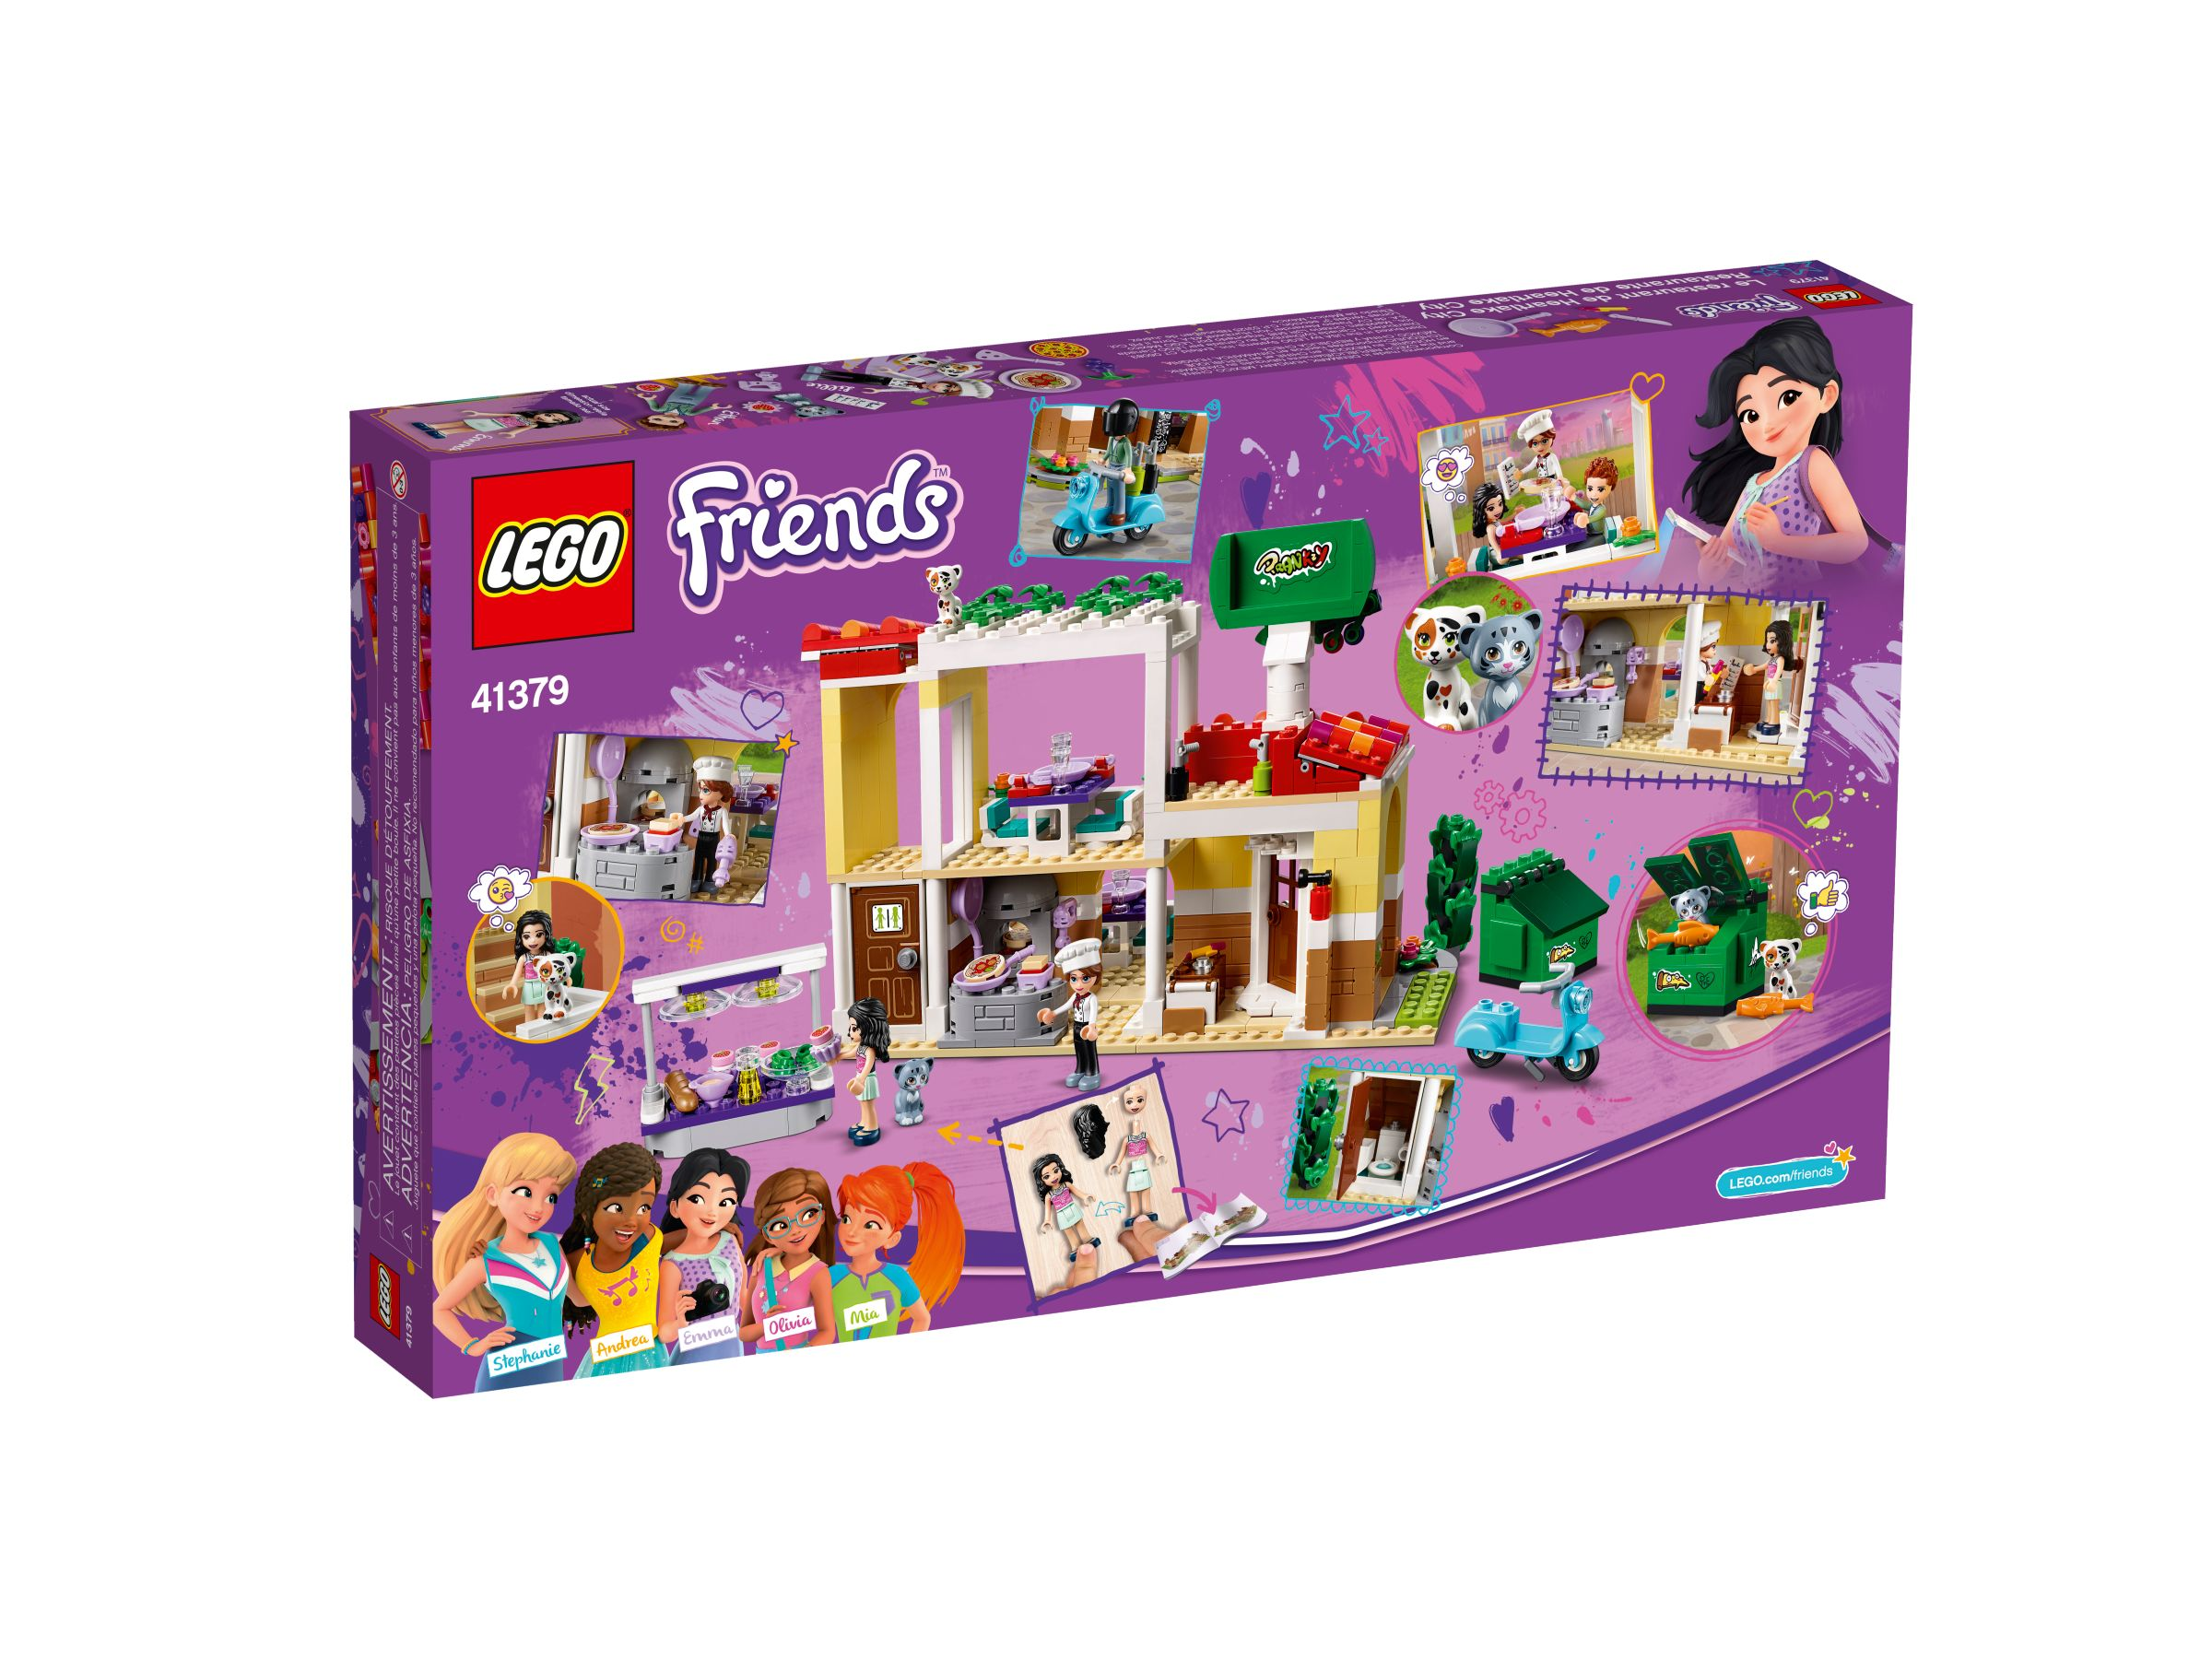 LEGO Friends 41379 Heartlake City Restaurant LEGO_41379_alt4.jpg